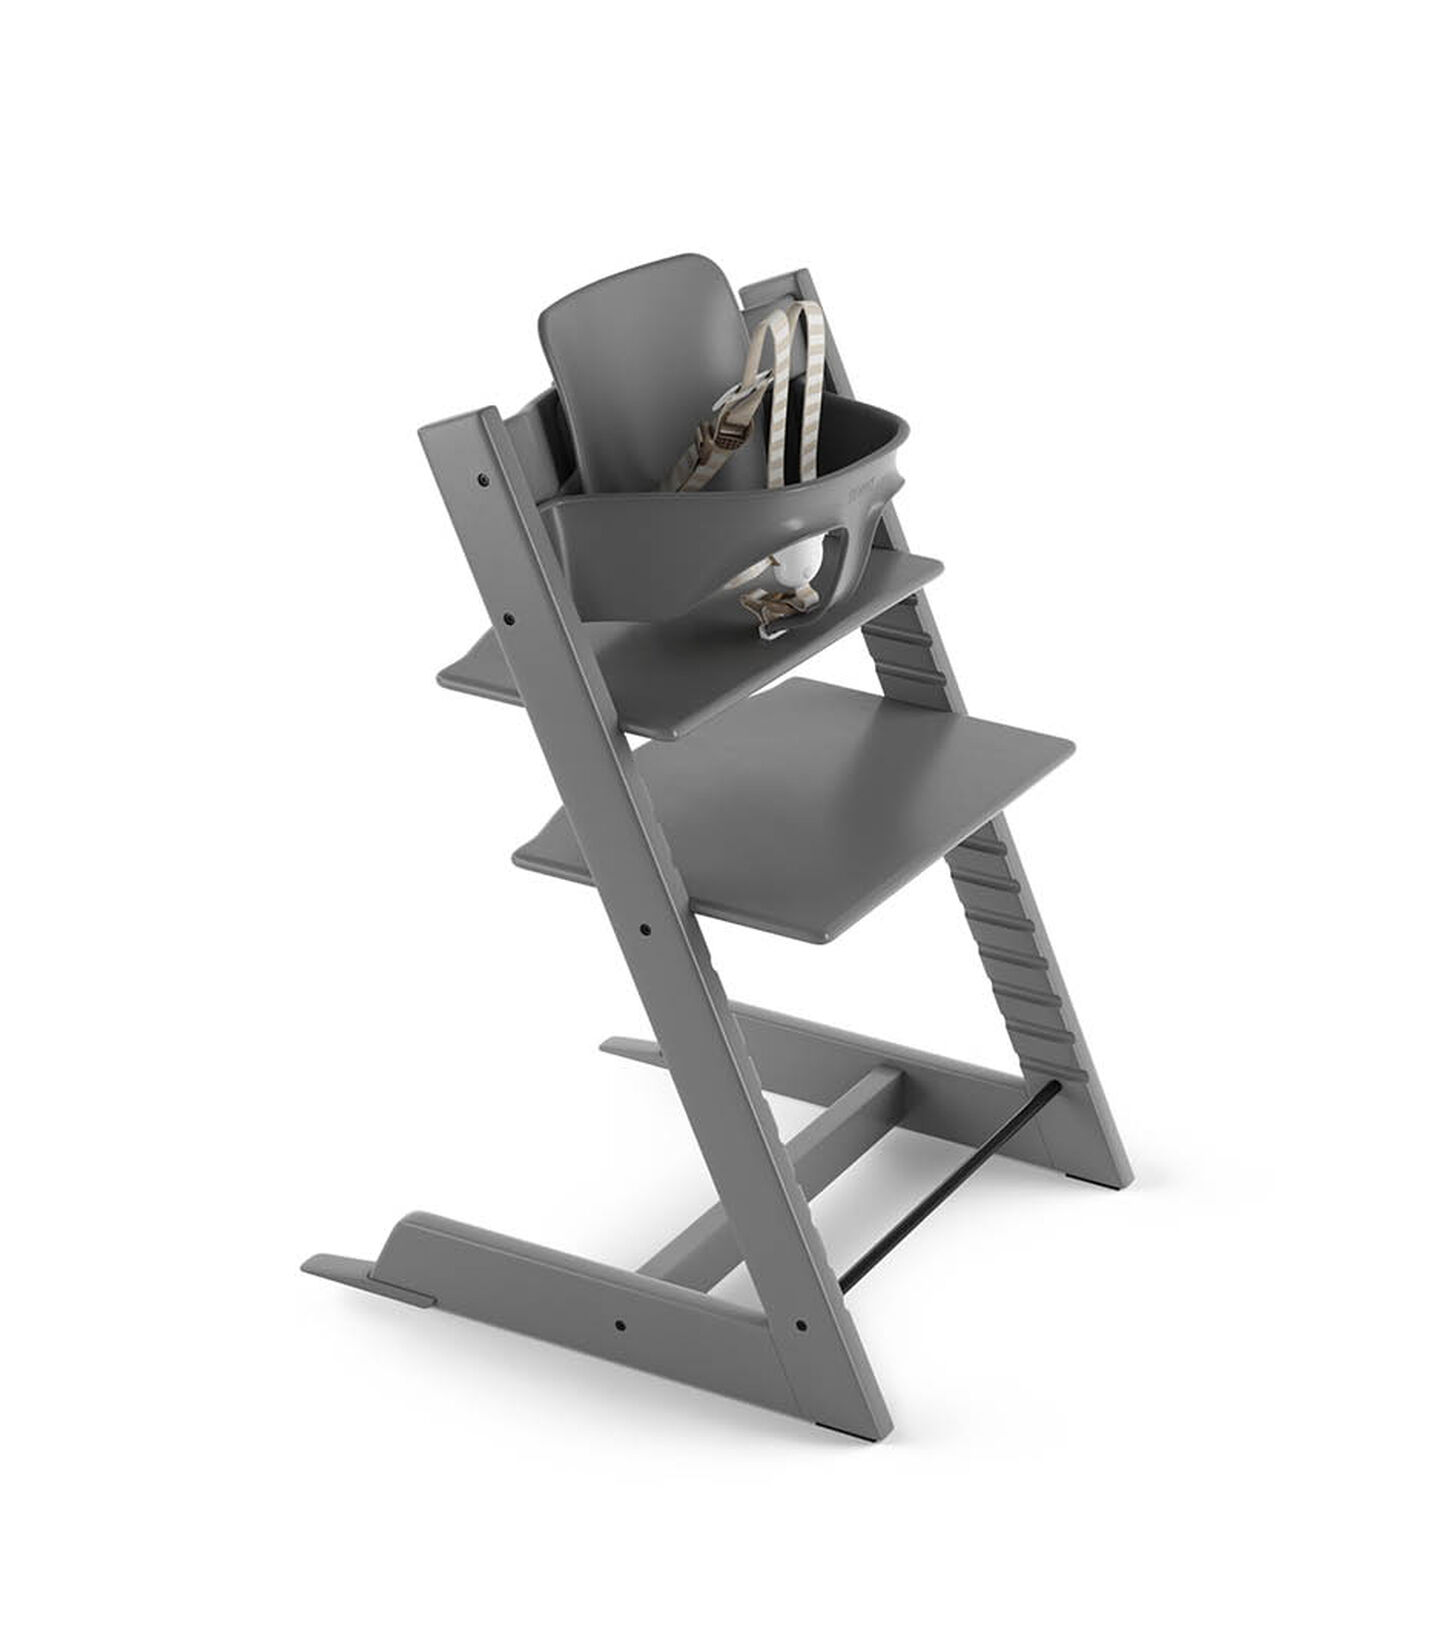 Tripp Trapp® Bundle High Chair US 18 Storm Grey, Storm Grey, mainview view 1